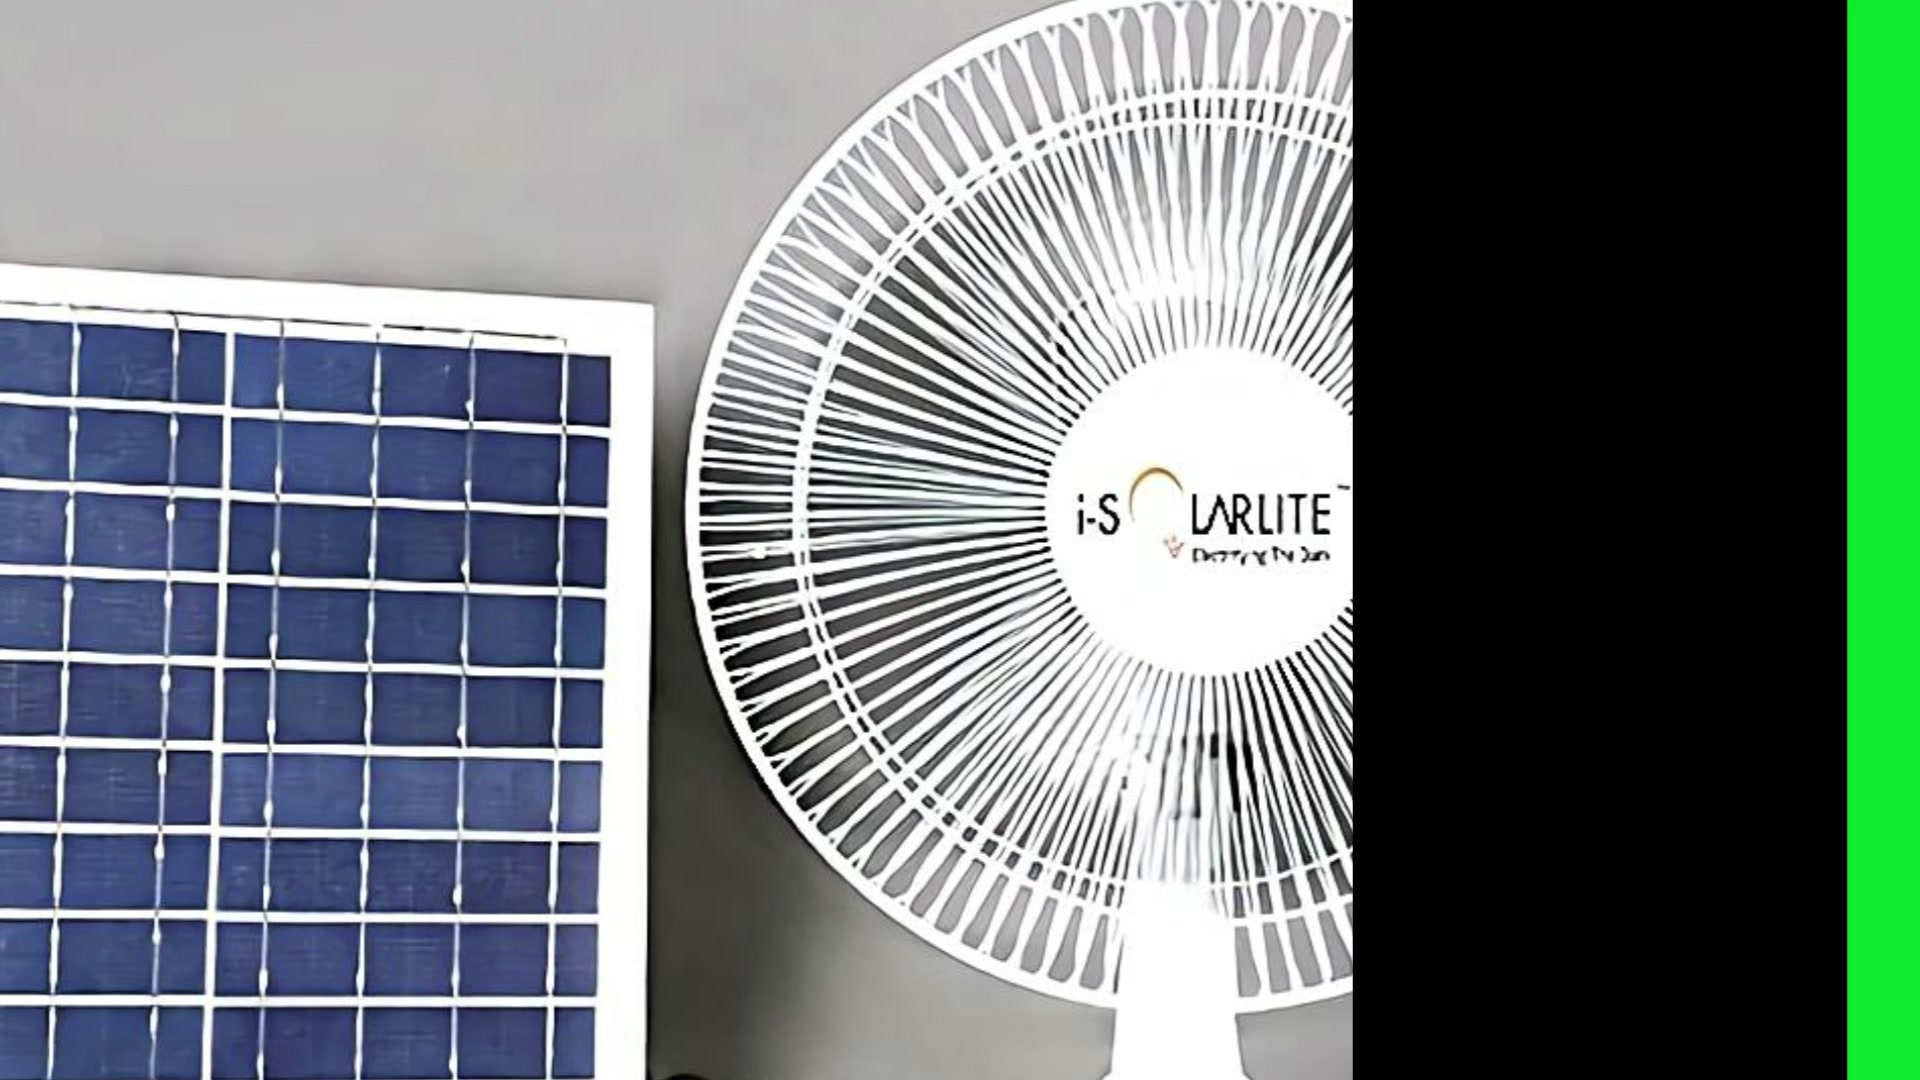 i-Solarlite Bena Solar Table Fan with Battery Backup